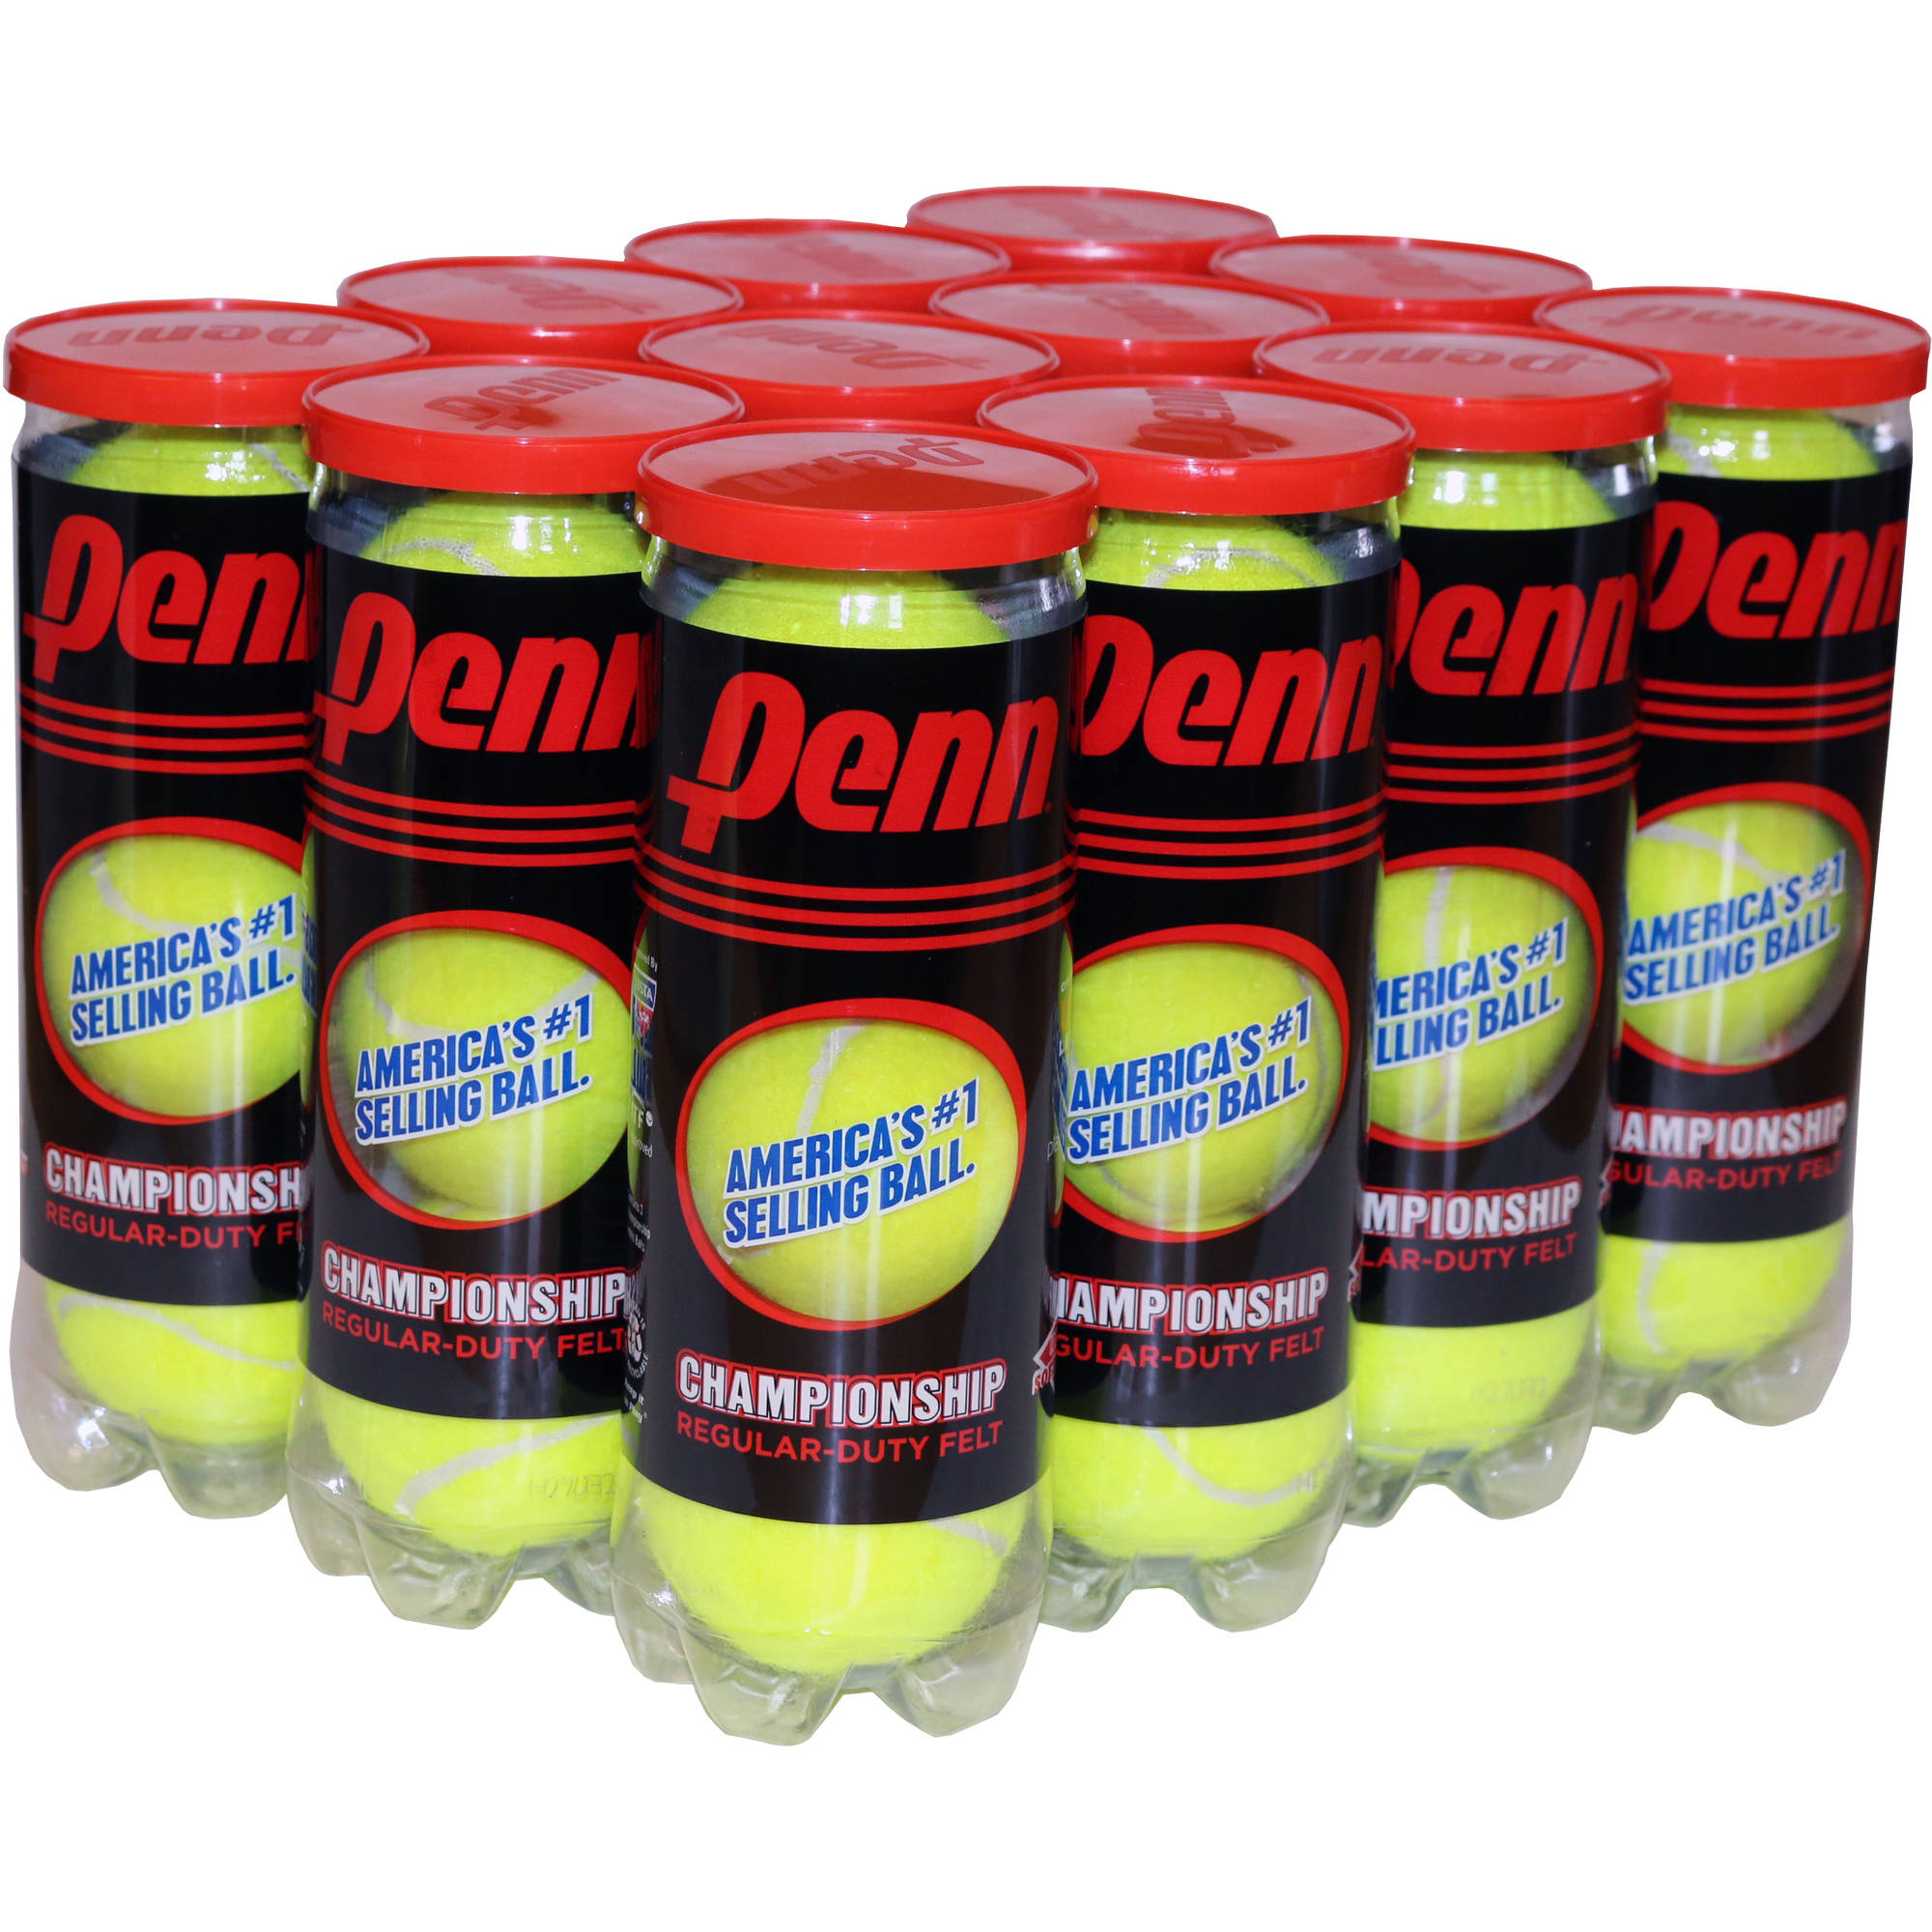 Penn Championship Regular Duty Tennis Ball Case (12 cans, 36 balls)